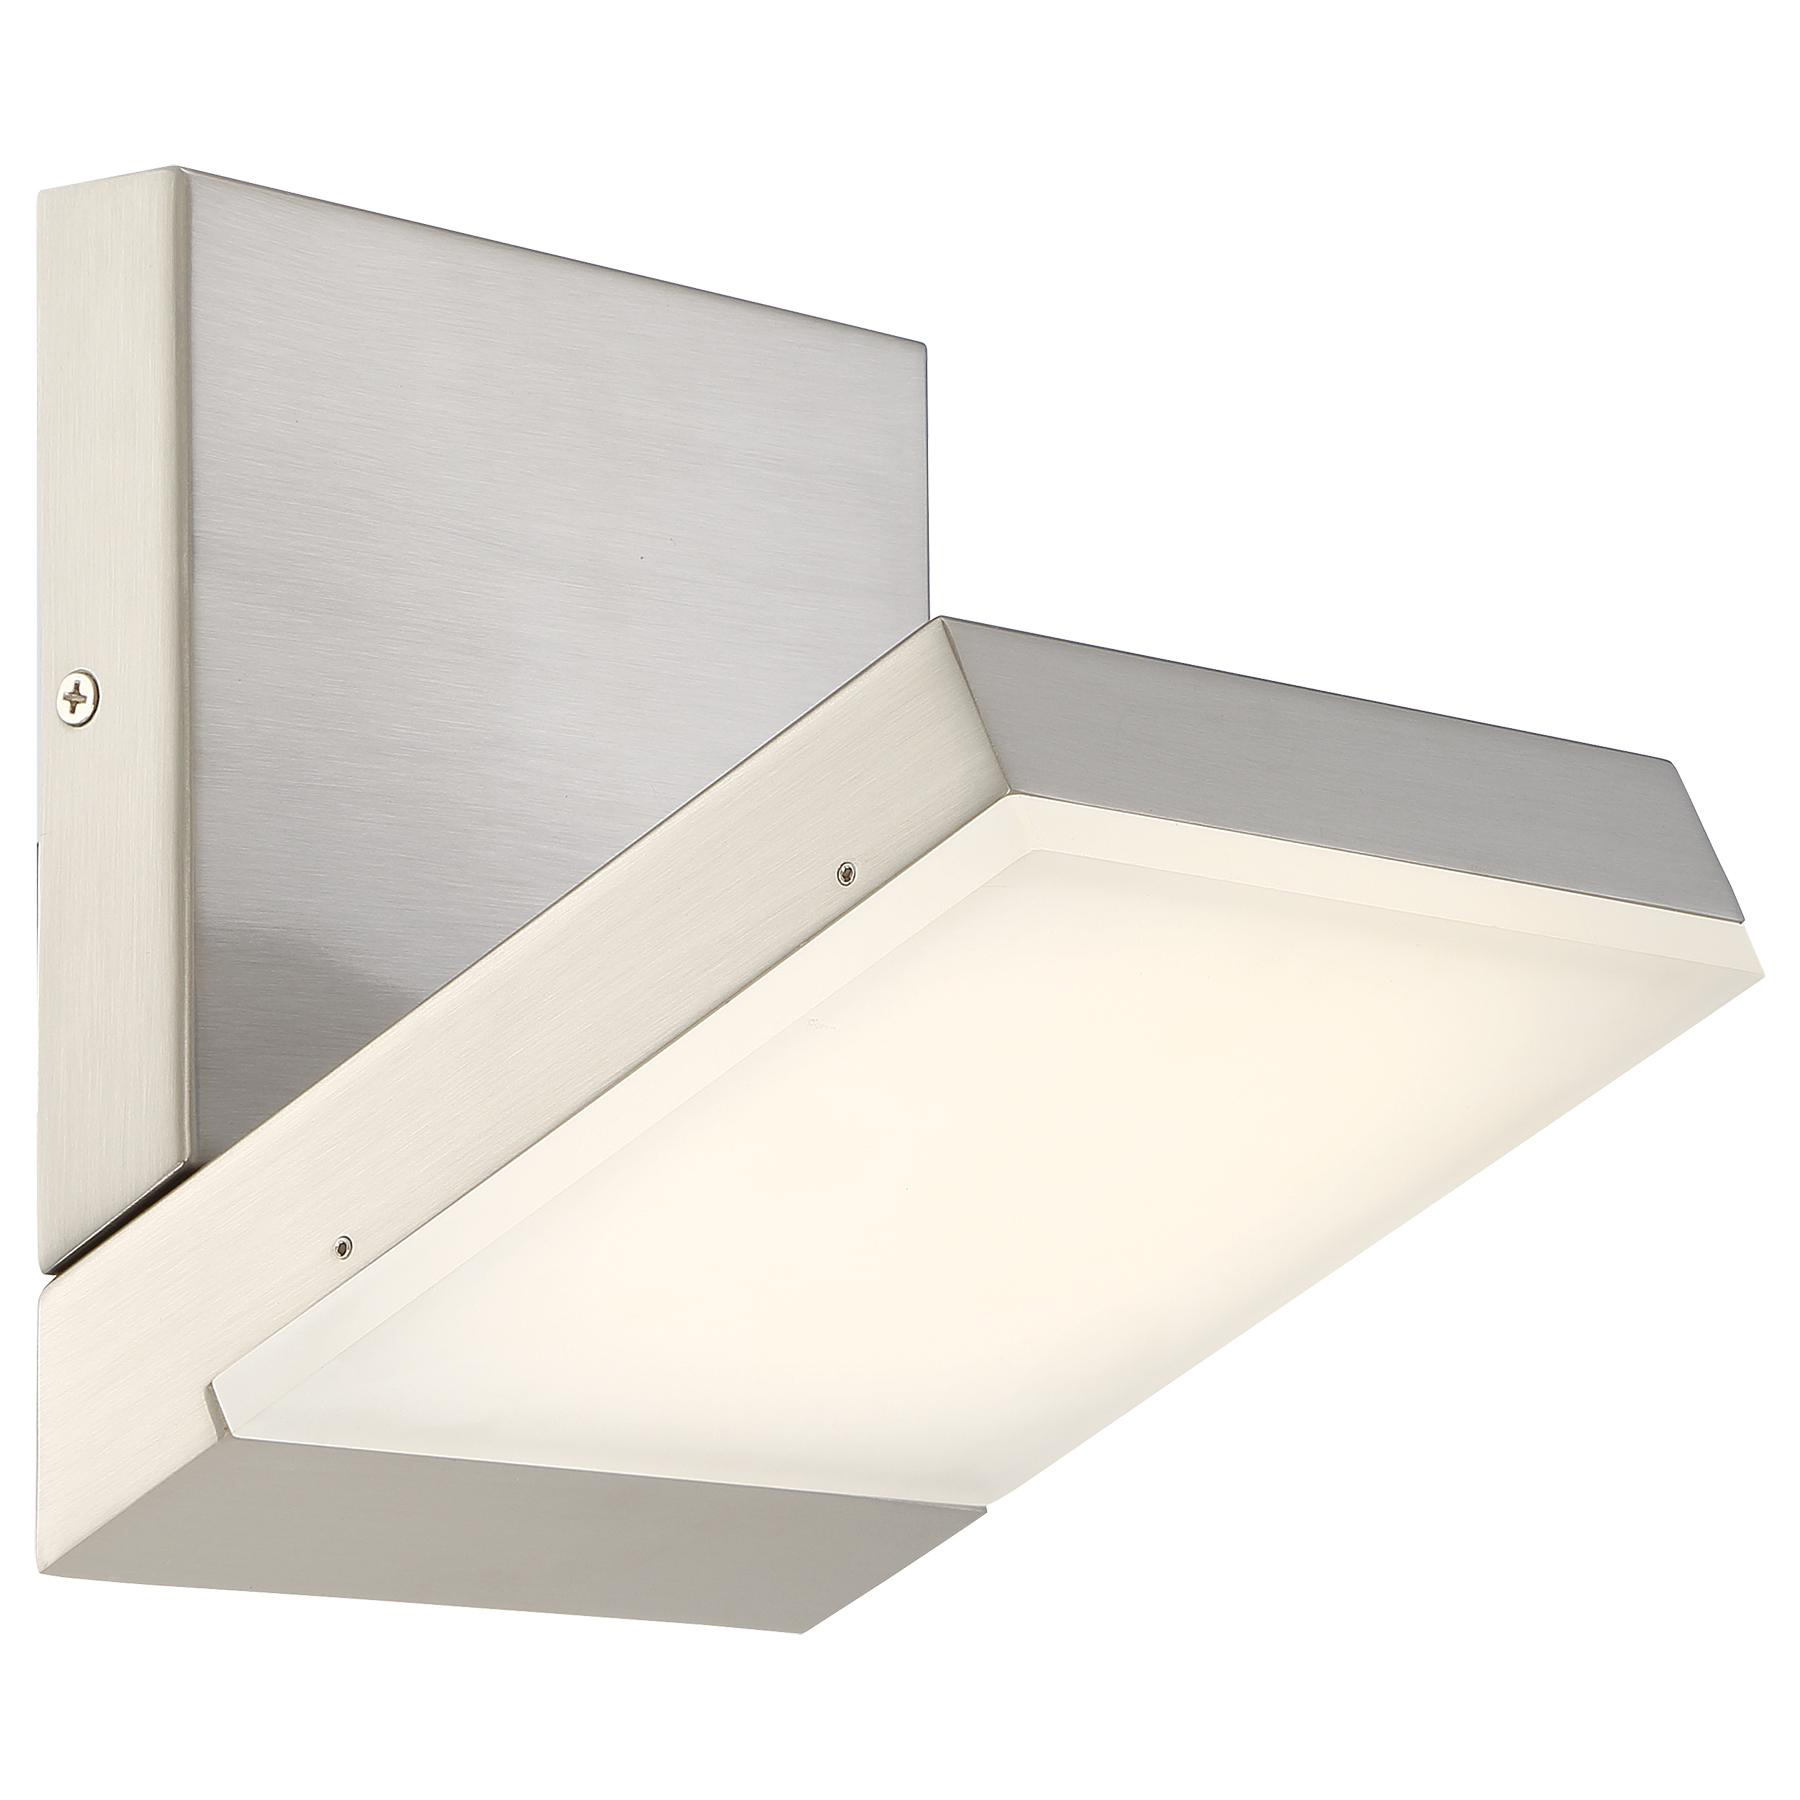 Angle Bathroom Vanity Light By George Kovacs | P1251 084 L